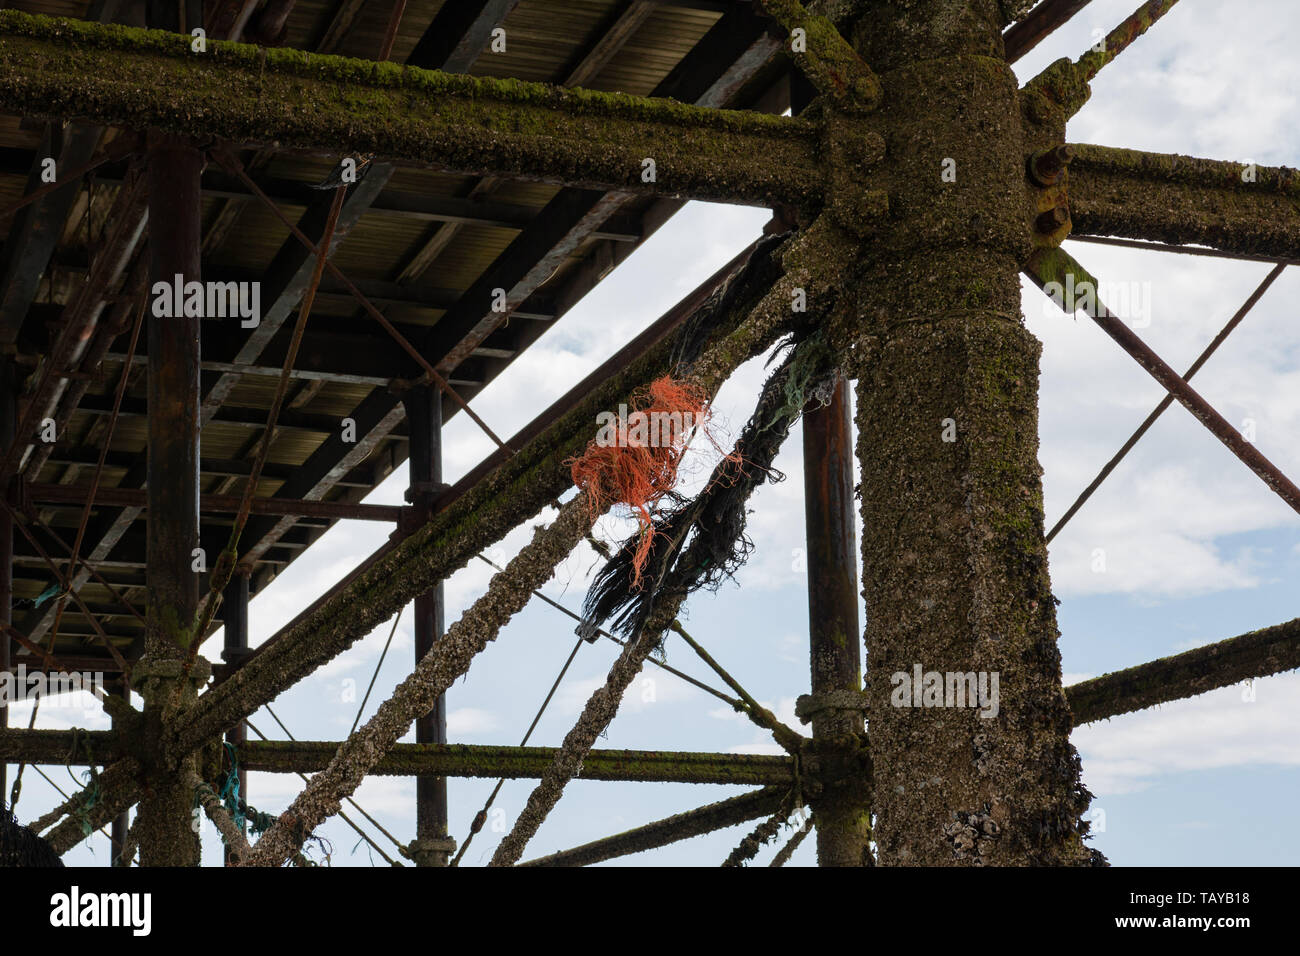 plastic fishing line tangle on the underside of the pier in Worthing, West Sussex - Stock Image